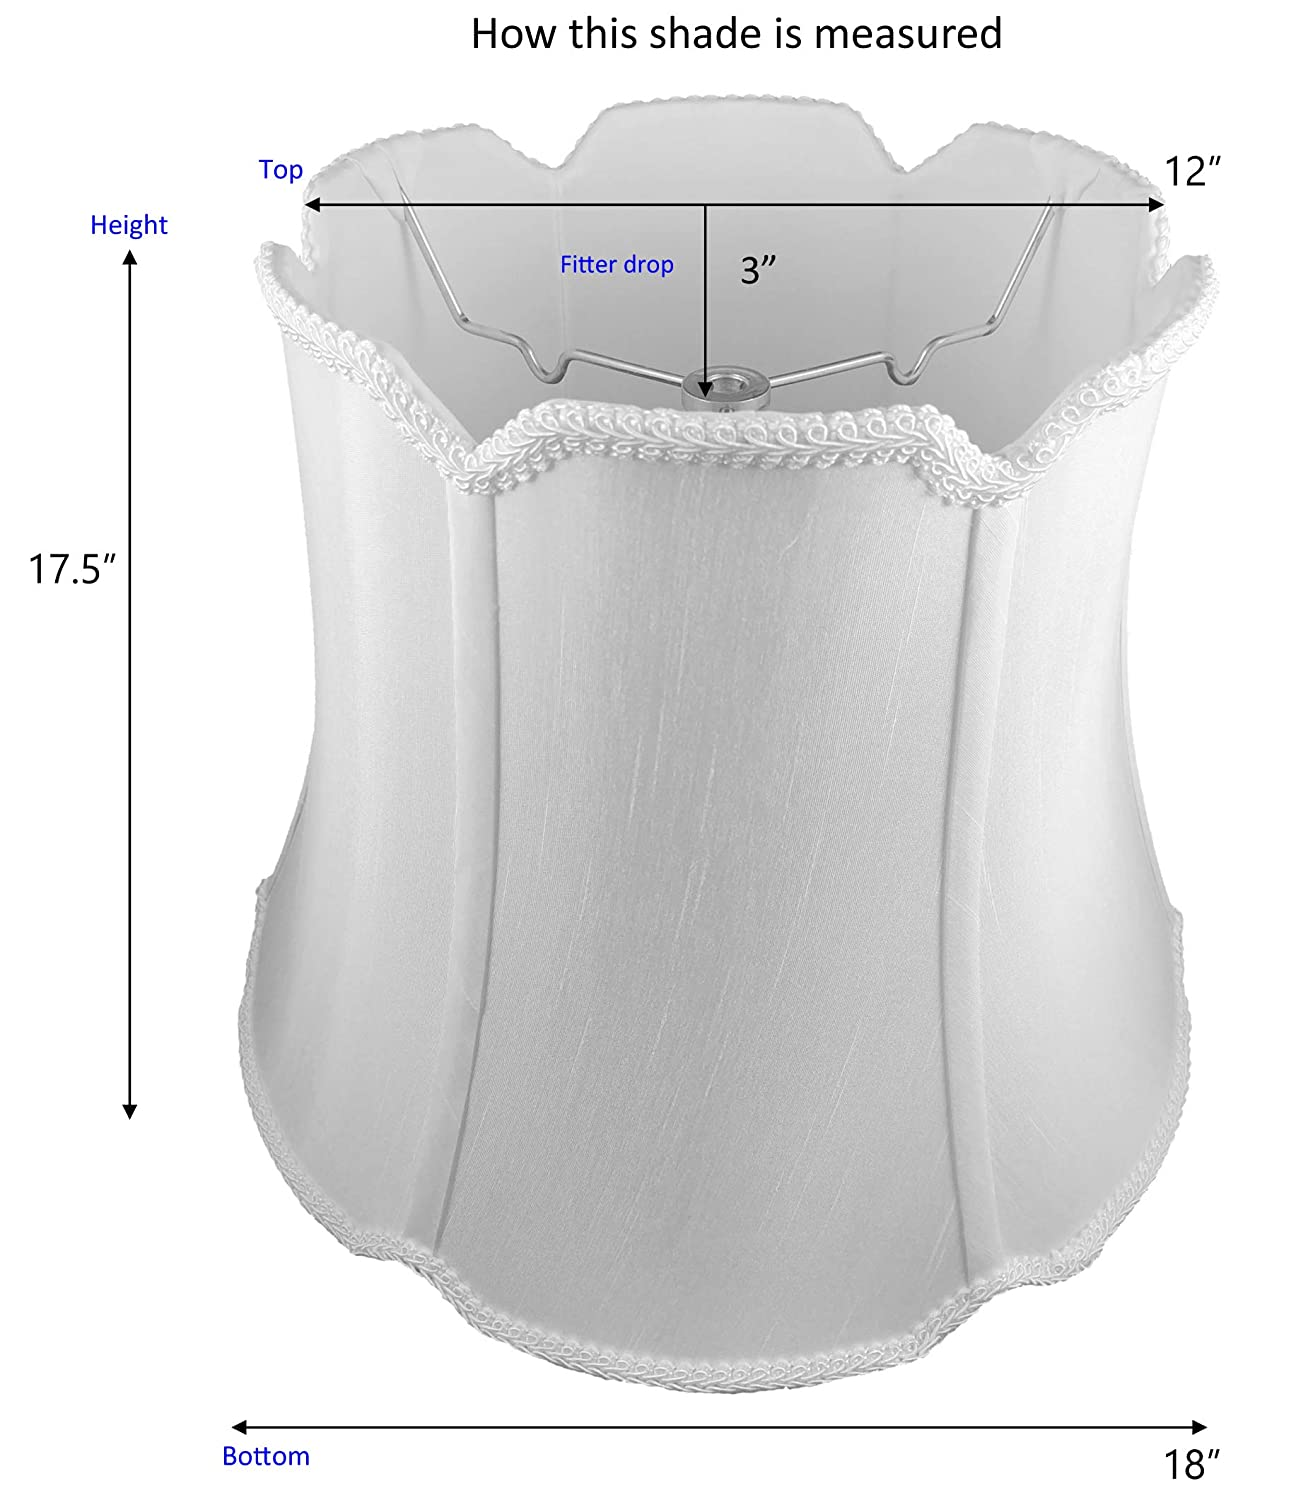 American Pride Lampshade Co Shantung Honey 72-78095520A V-Notch Soft Tailored Lampshade